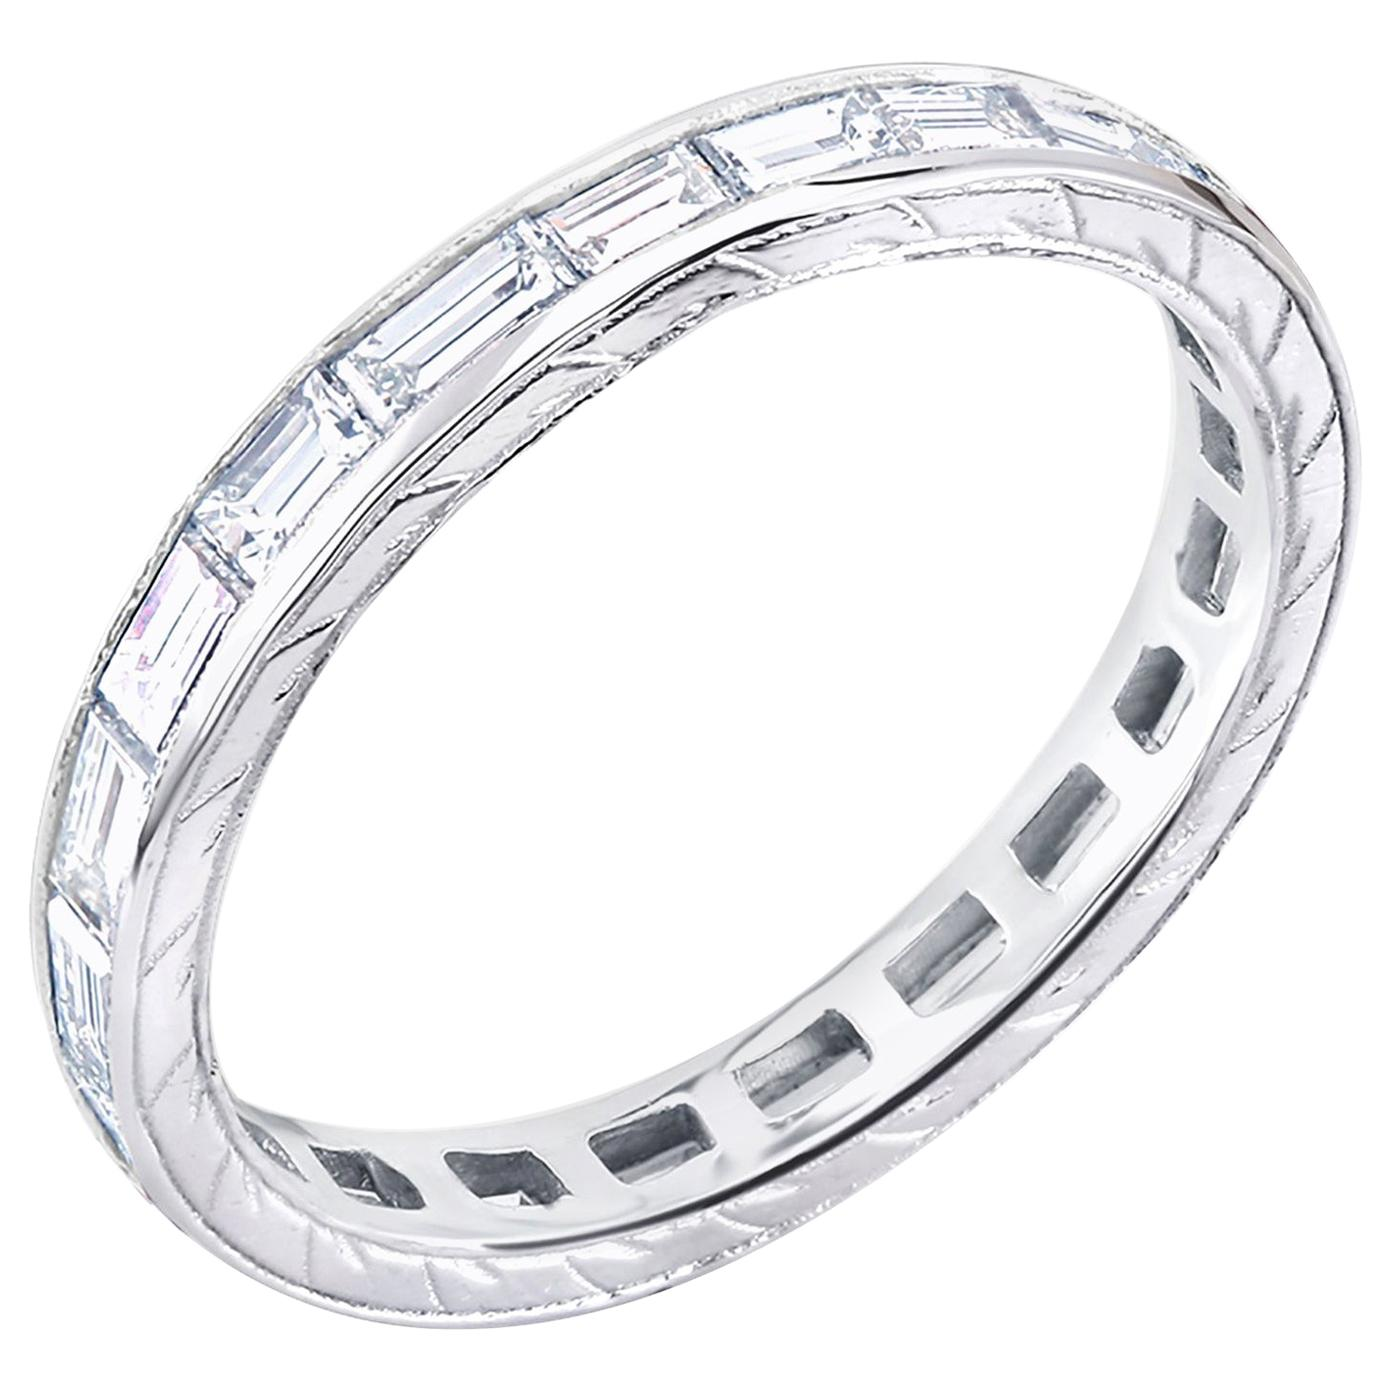 Platinum Baguette Diamond Engraved Eternity Band Weighing 1.50 Carat